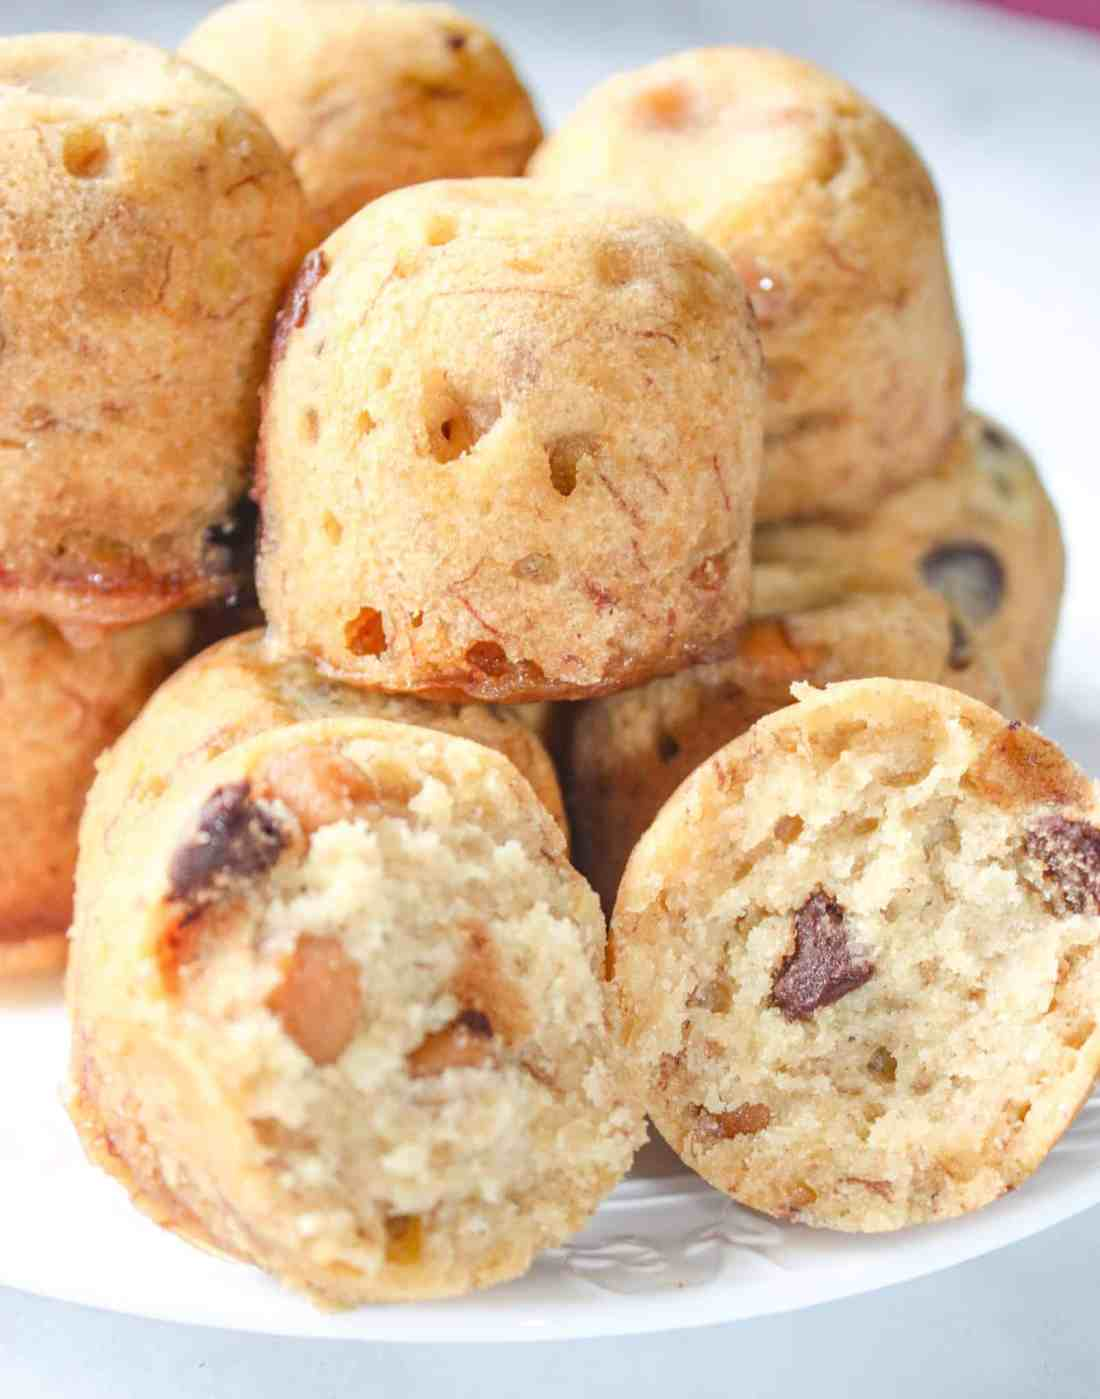 """Instant Pot Peanut Butter Banana Bites are an easy pressure cooker snack. These gluten free """"bites"""" are a flavourful muffin variation that your whole family will enjoy!"""